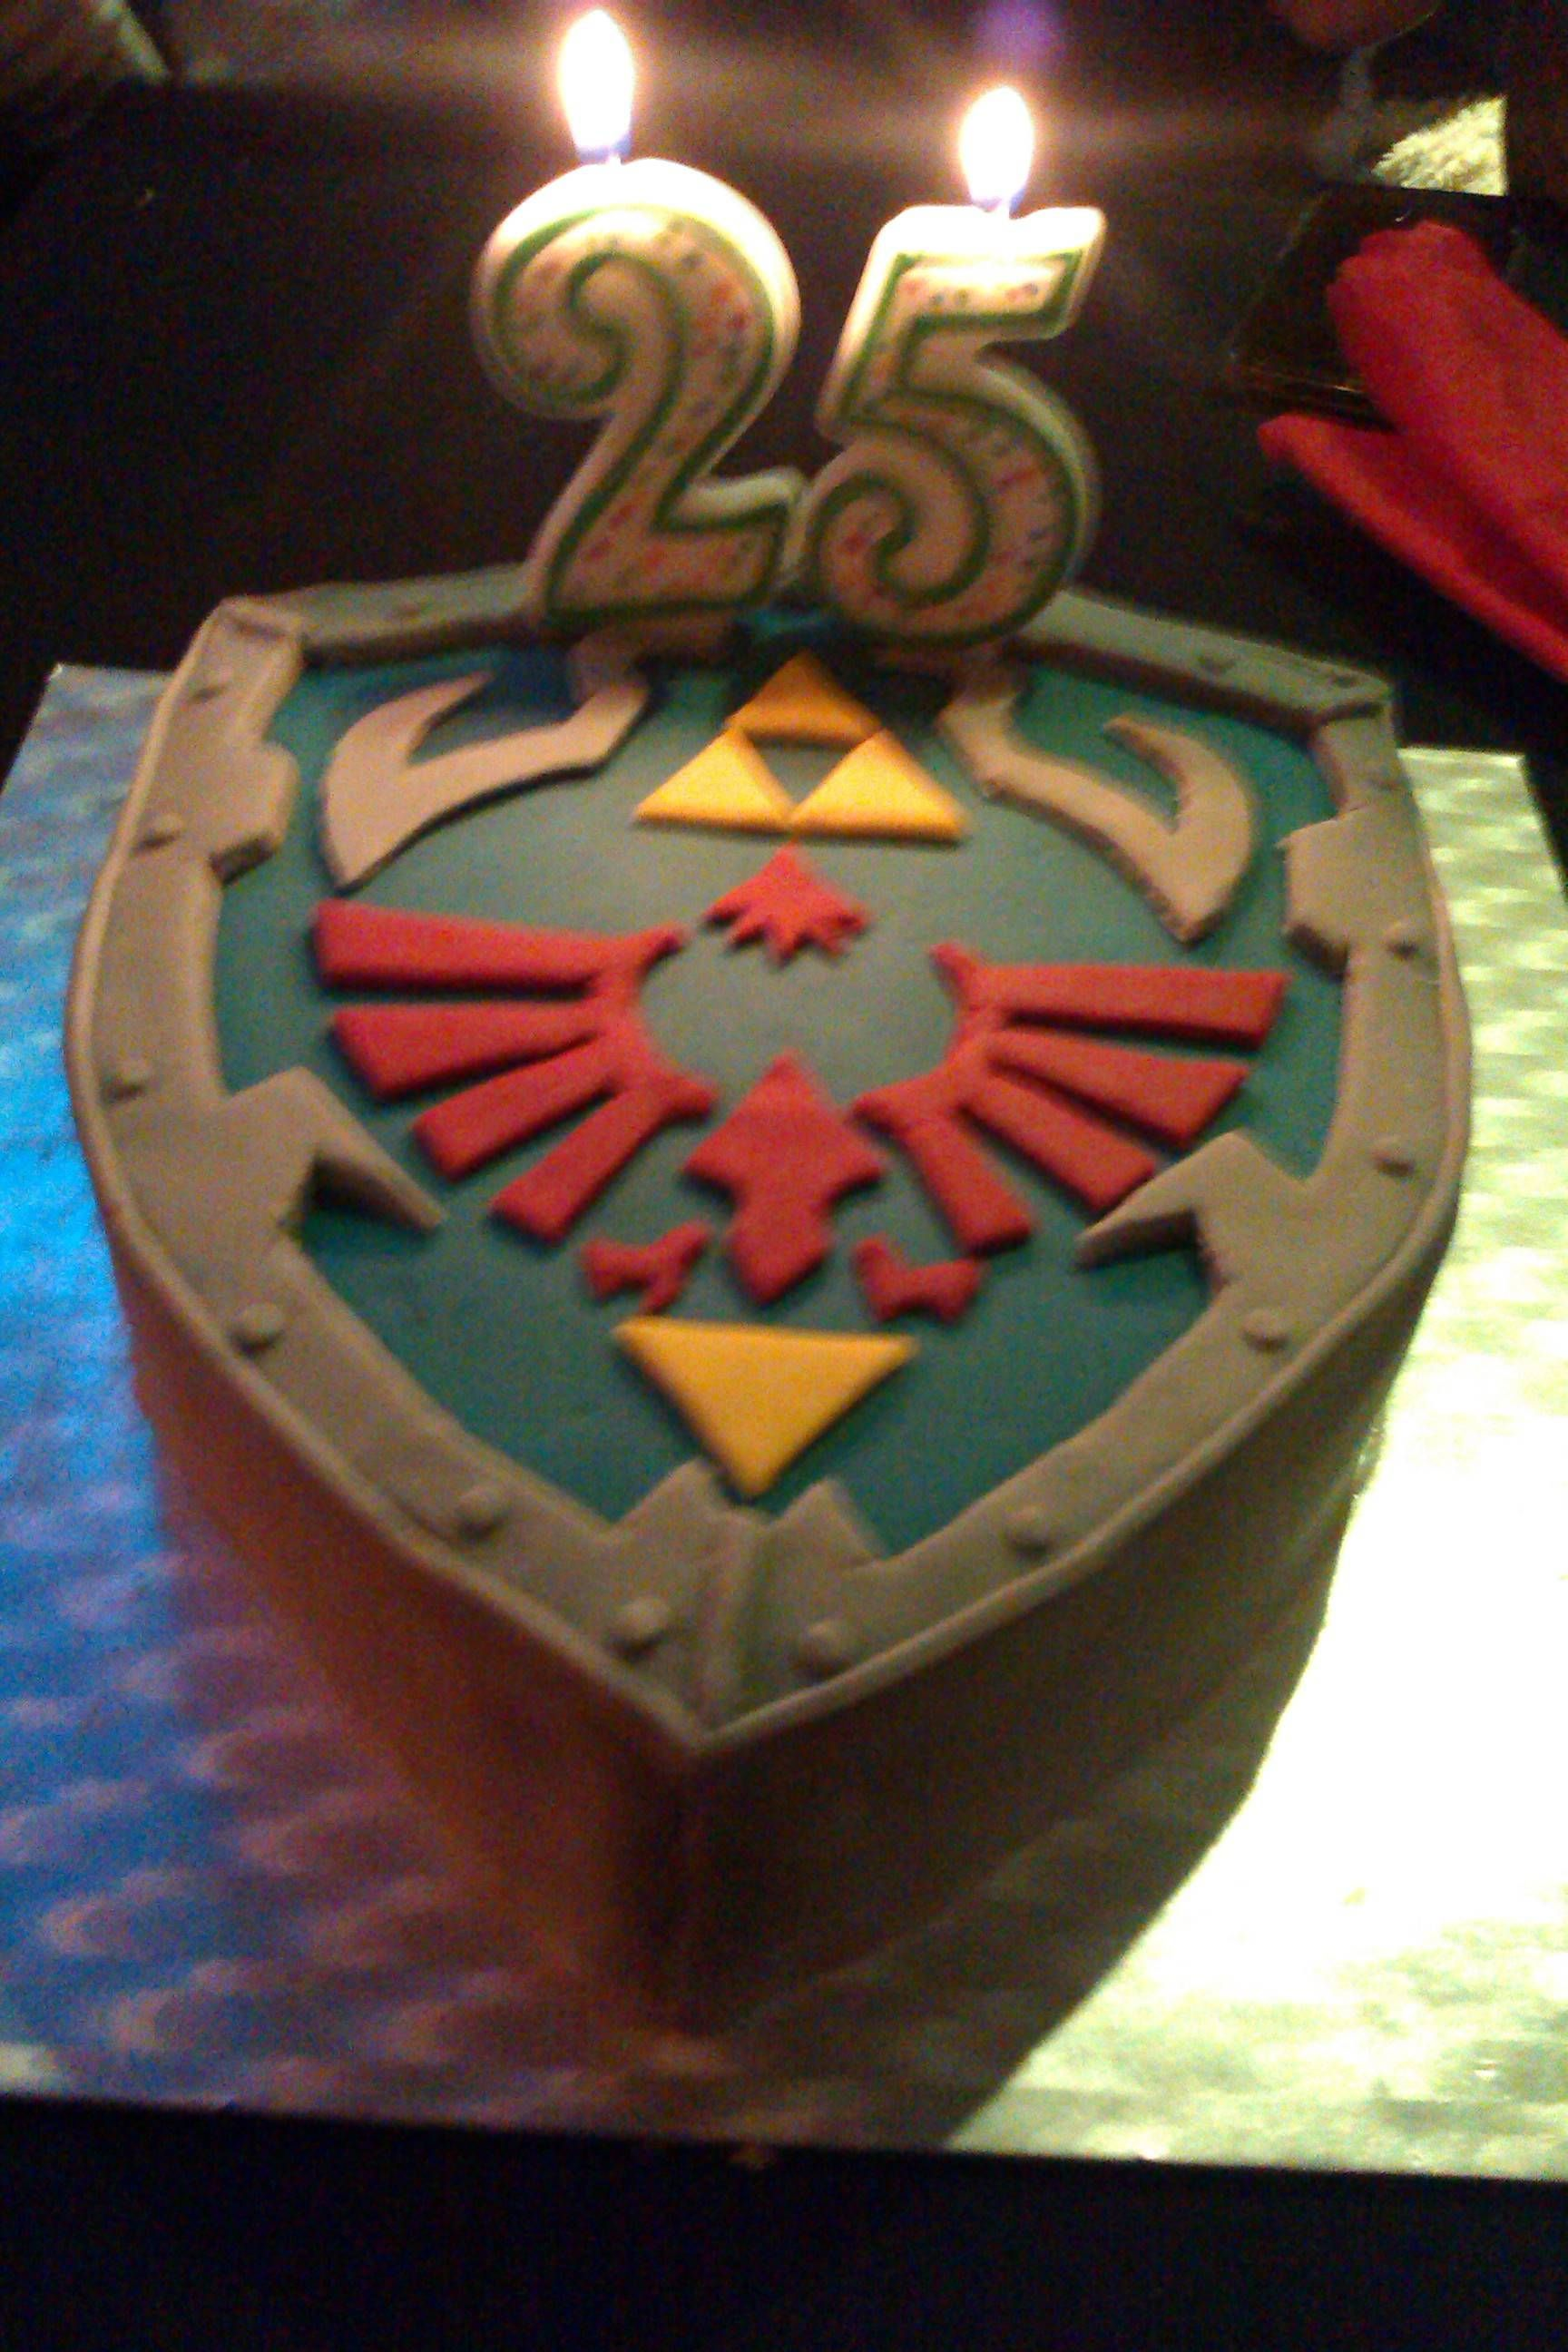 My Girlfriend Made Me This Awesome Cake Birthday Cake For Him